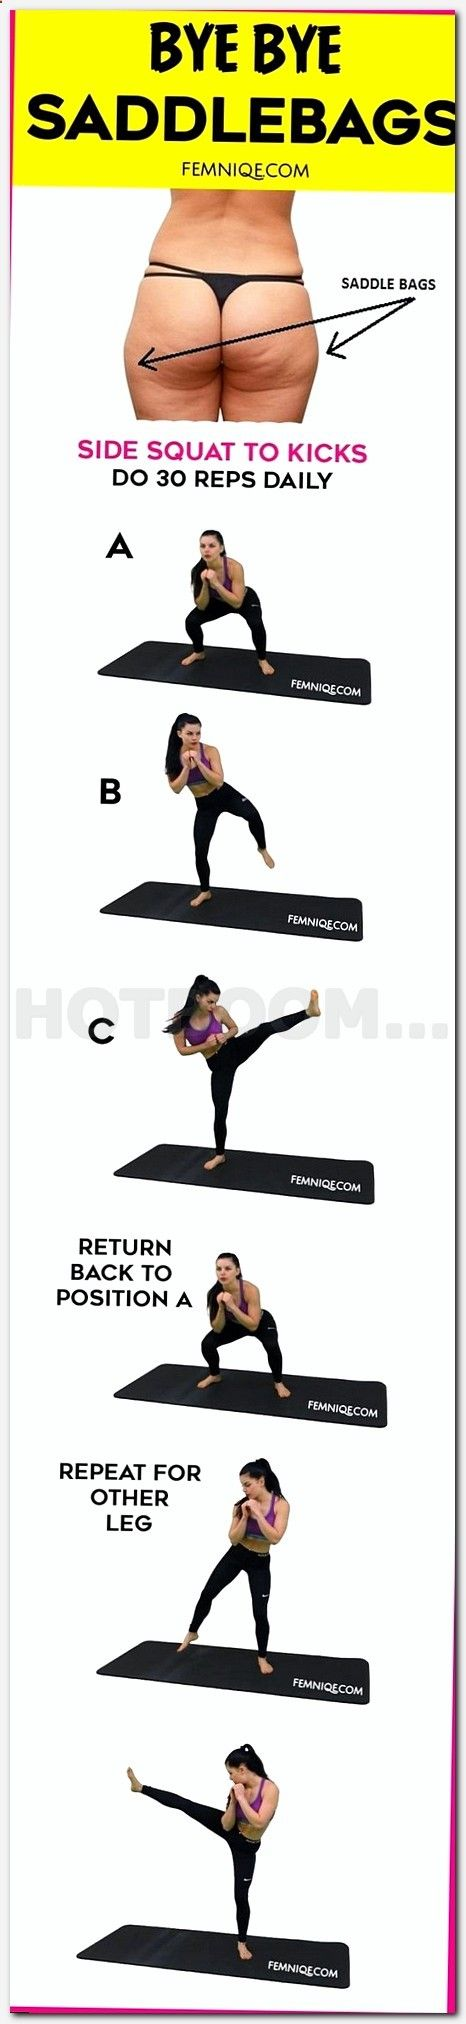 Do yoga burn fat photo 8